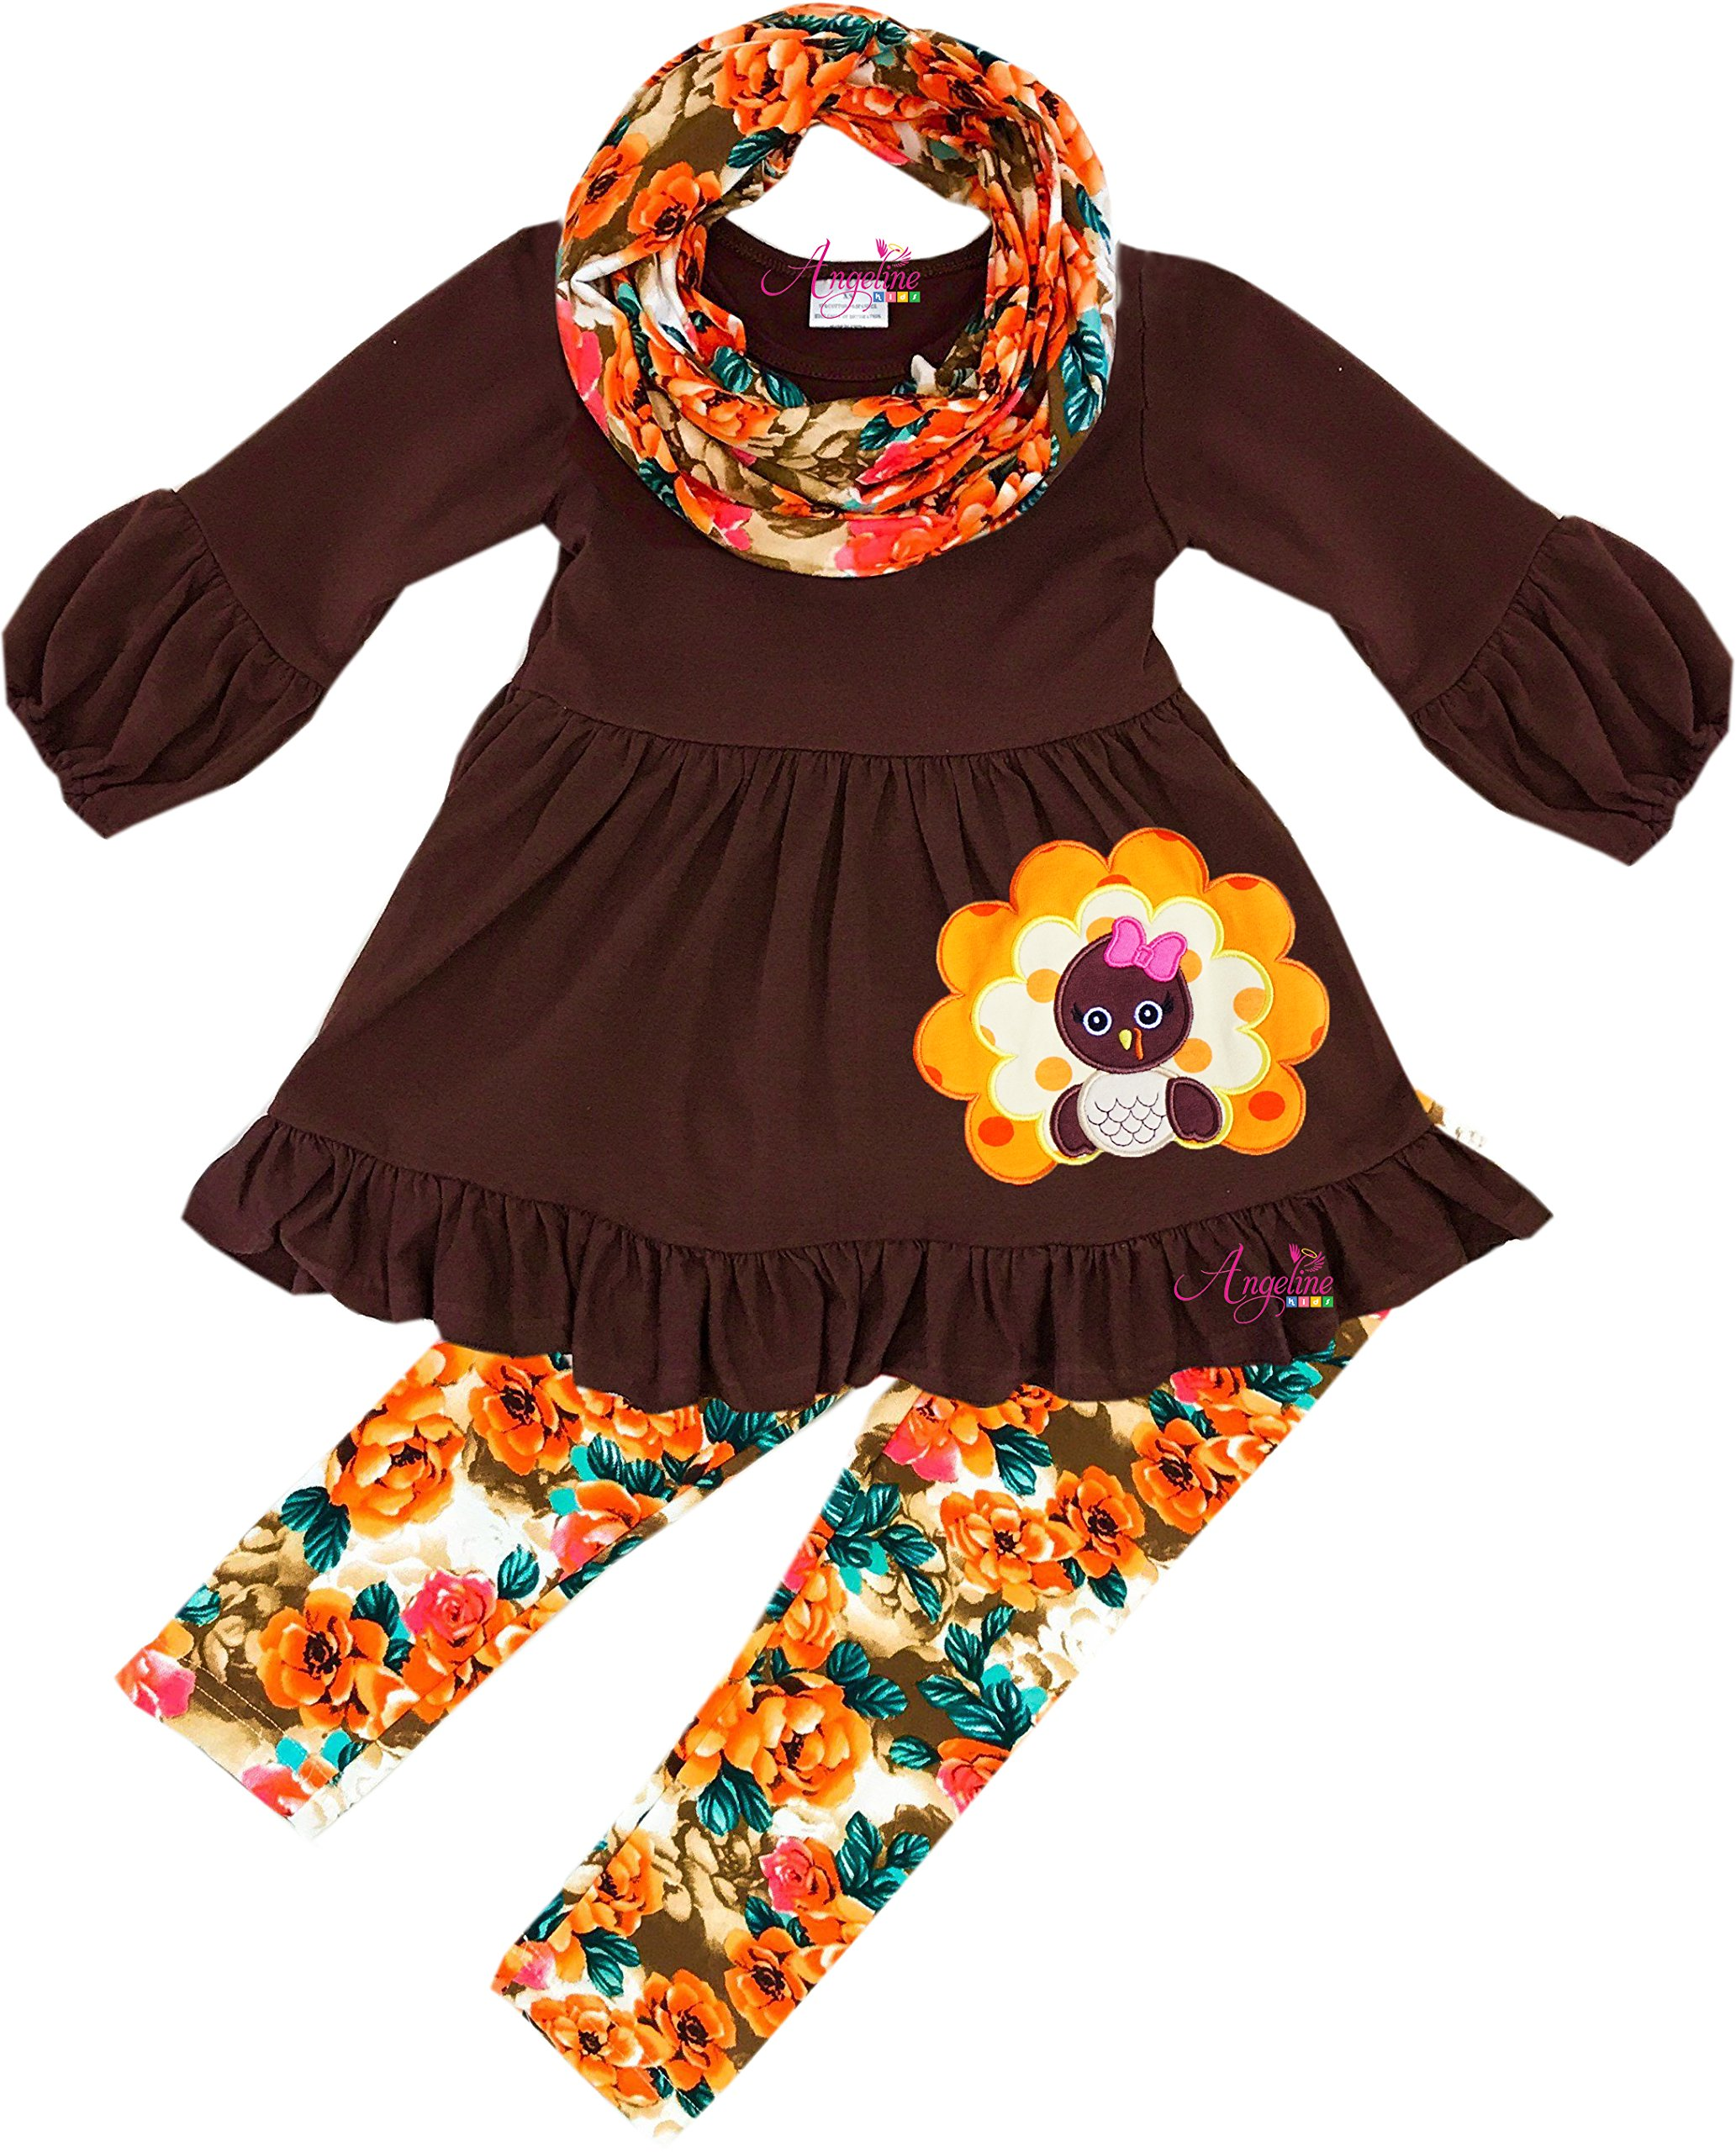 Angeline Boutique Clothing Girls Thanksgiving Turkey Vintage Floral Scarf Legging Set 7T/2XL